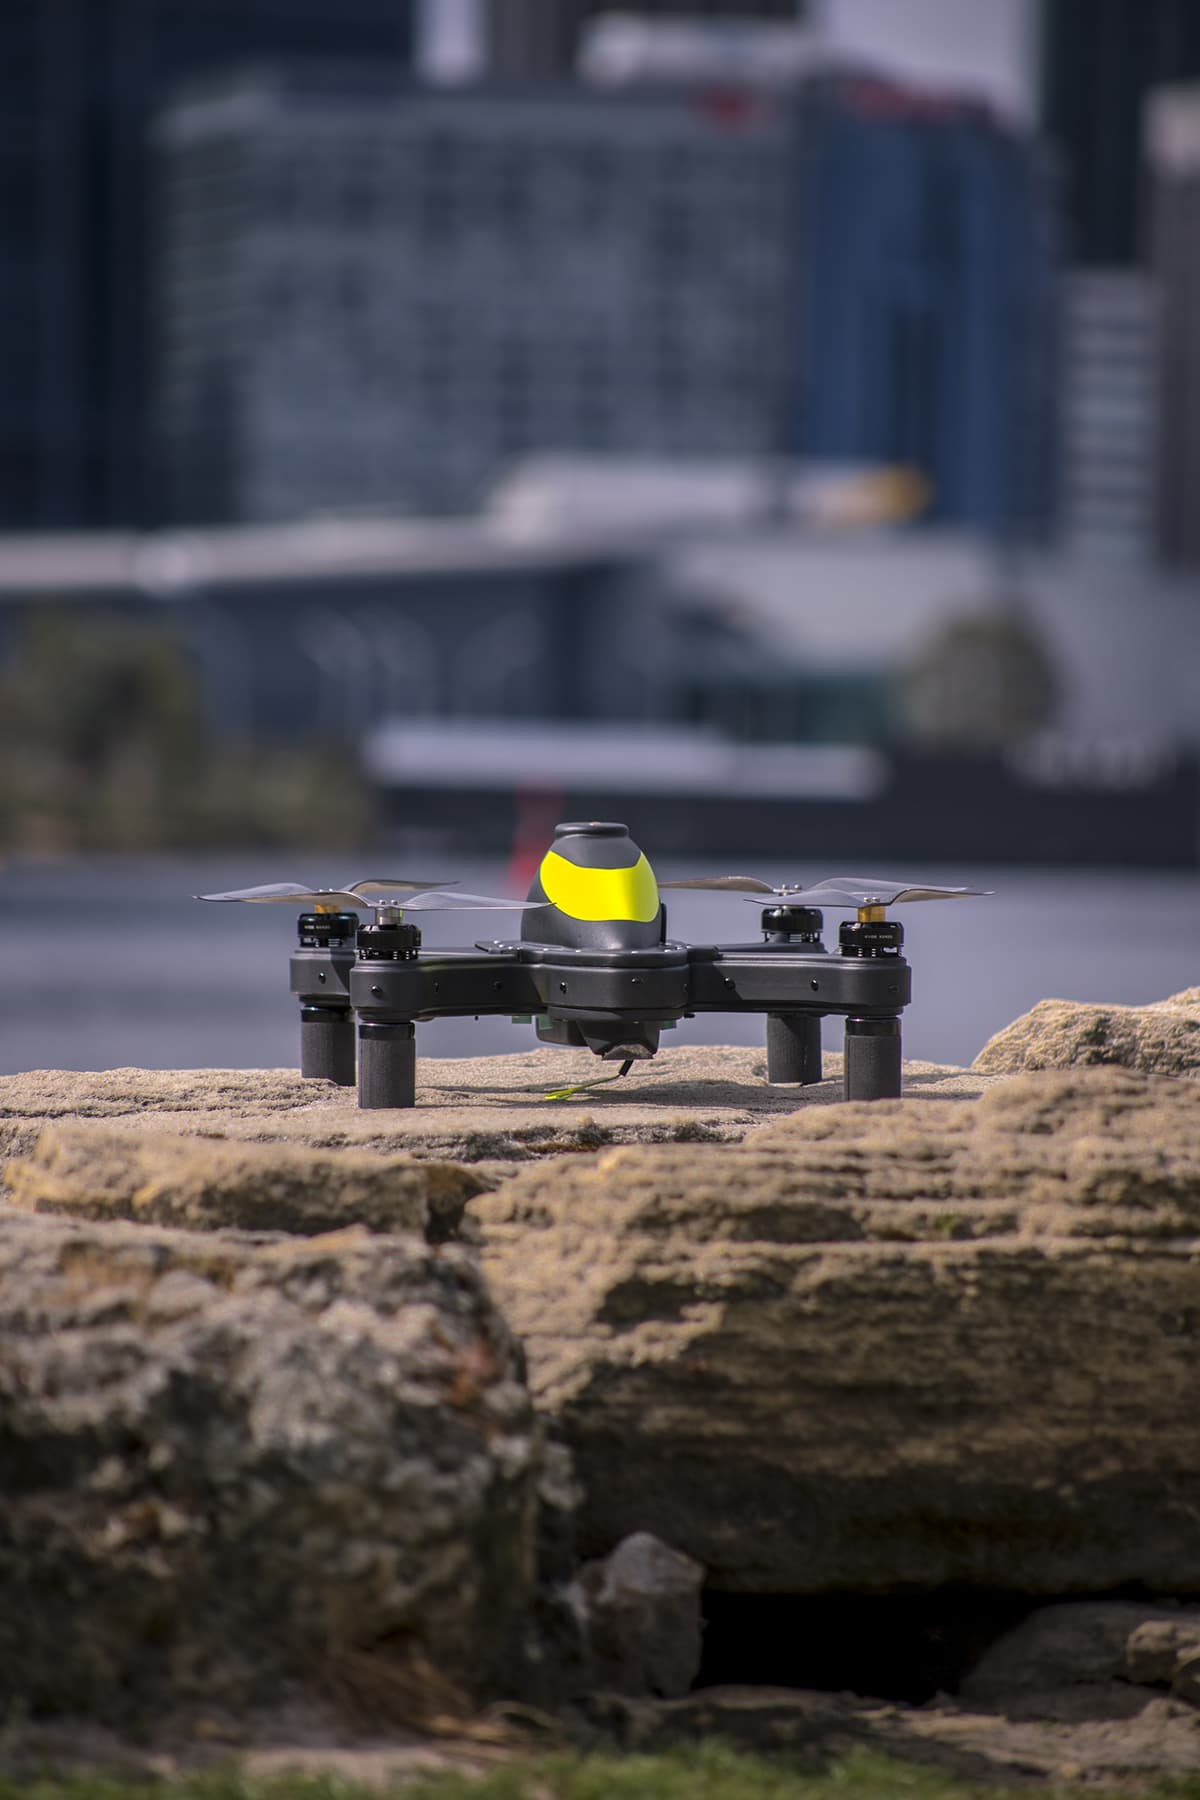 Fishing with a drone - Cuta-Copter